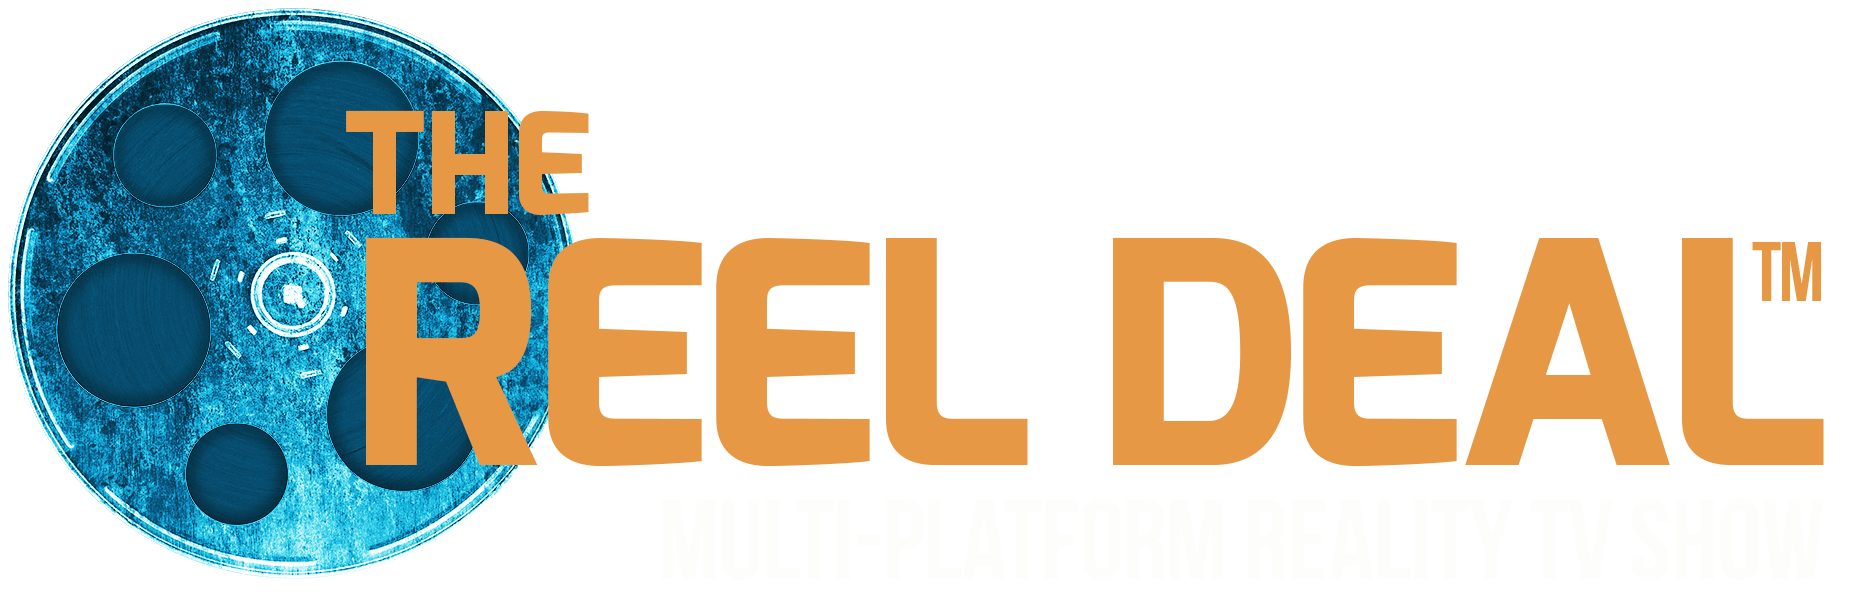 Reel Deal updated logo